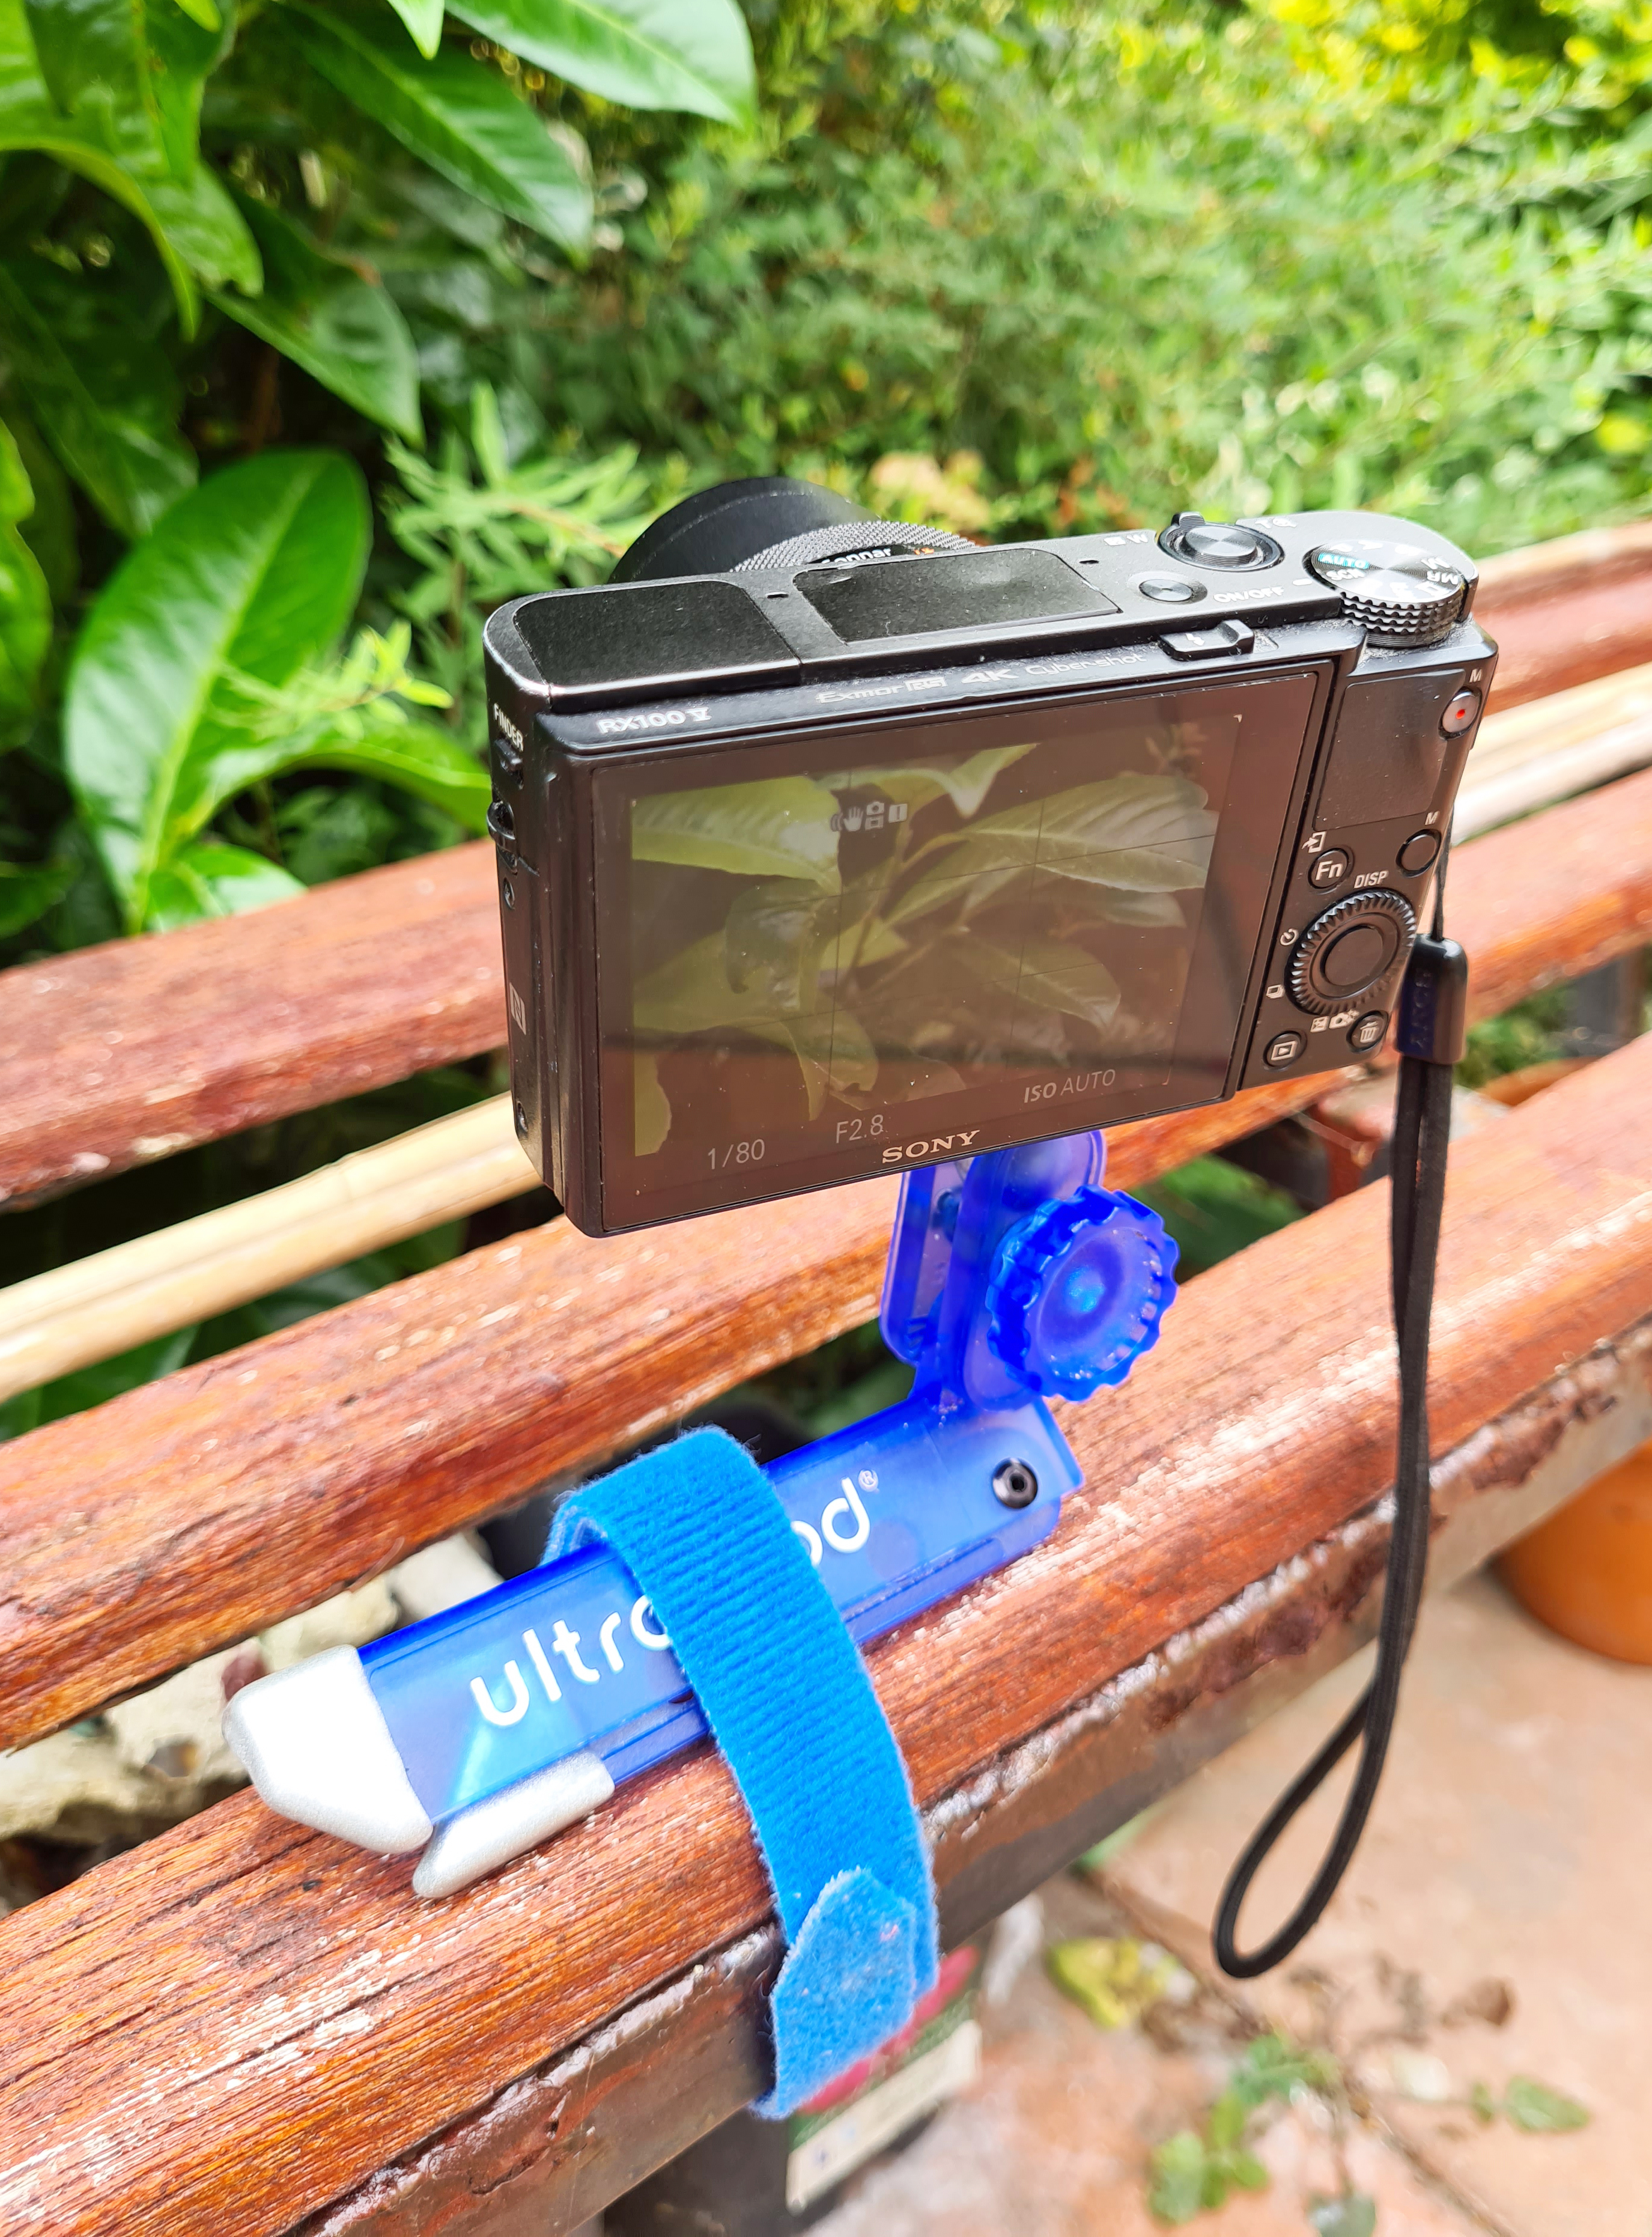 Ultrapod and Sony RX100M5